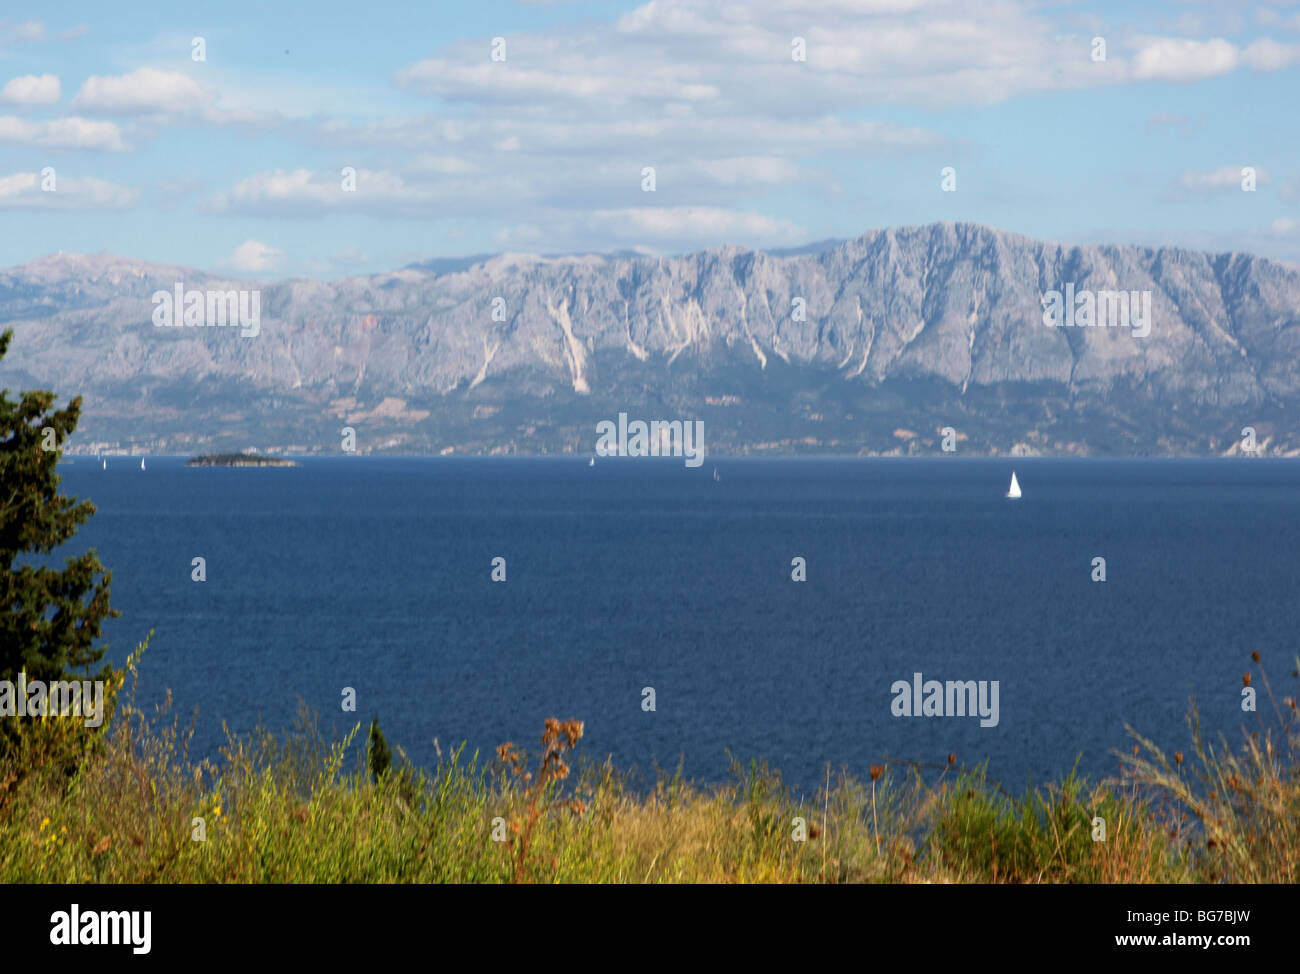 View across the Ionian sea from the Greek Island of Lefkas towards Greek mainland - Stock Image